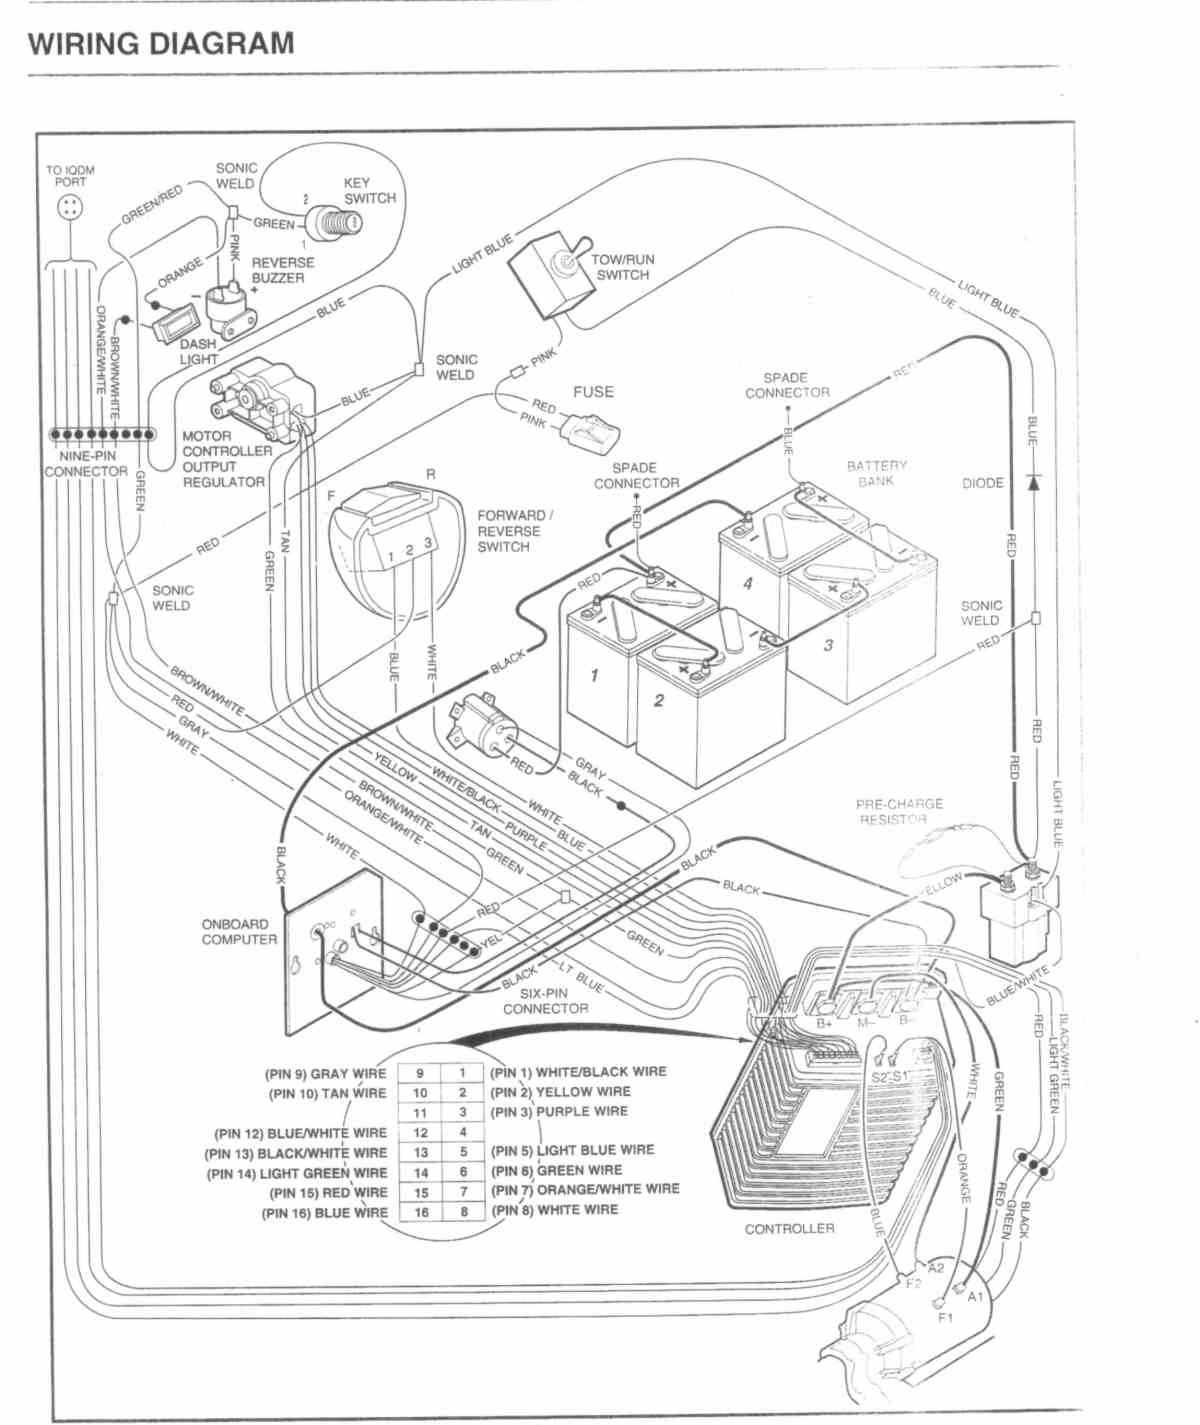 Western Golf Cart Accessories Wiring Diagram : Yamaha g electric wiring diagram ezgo golf cart rear axle